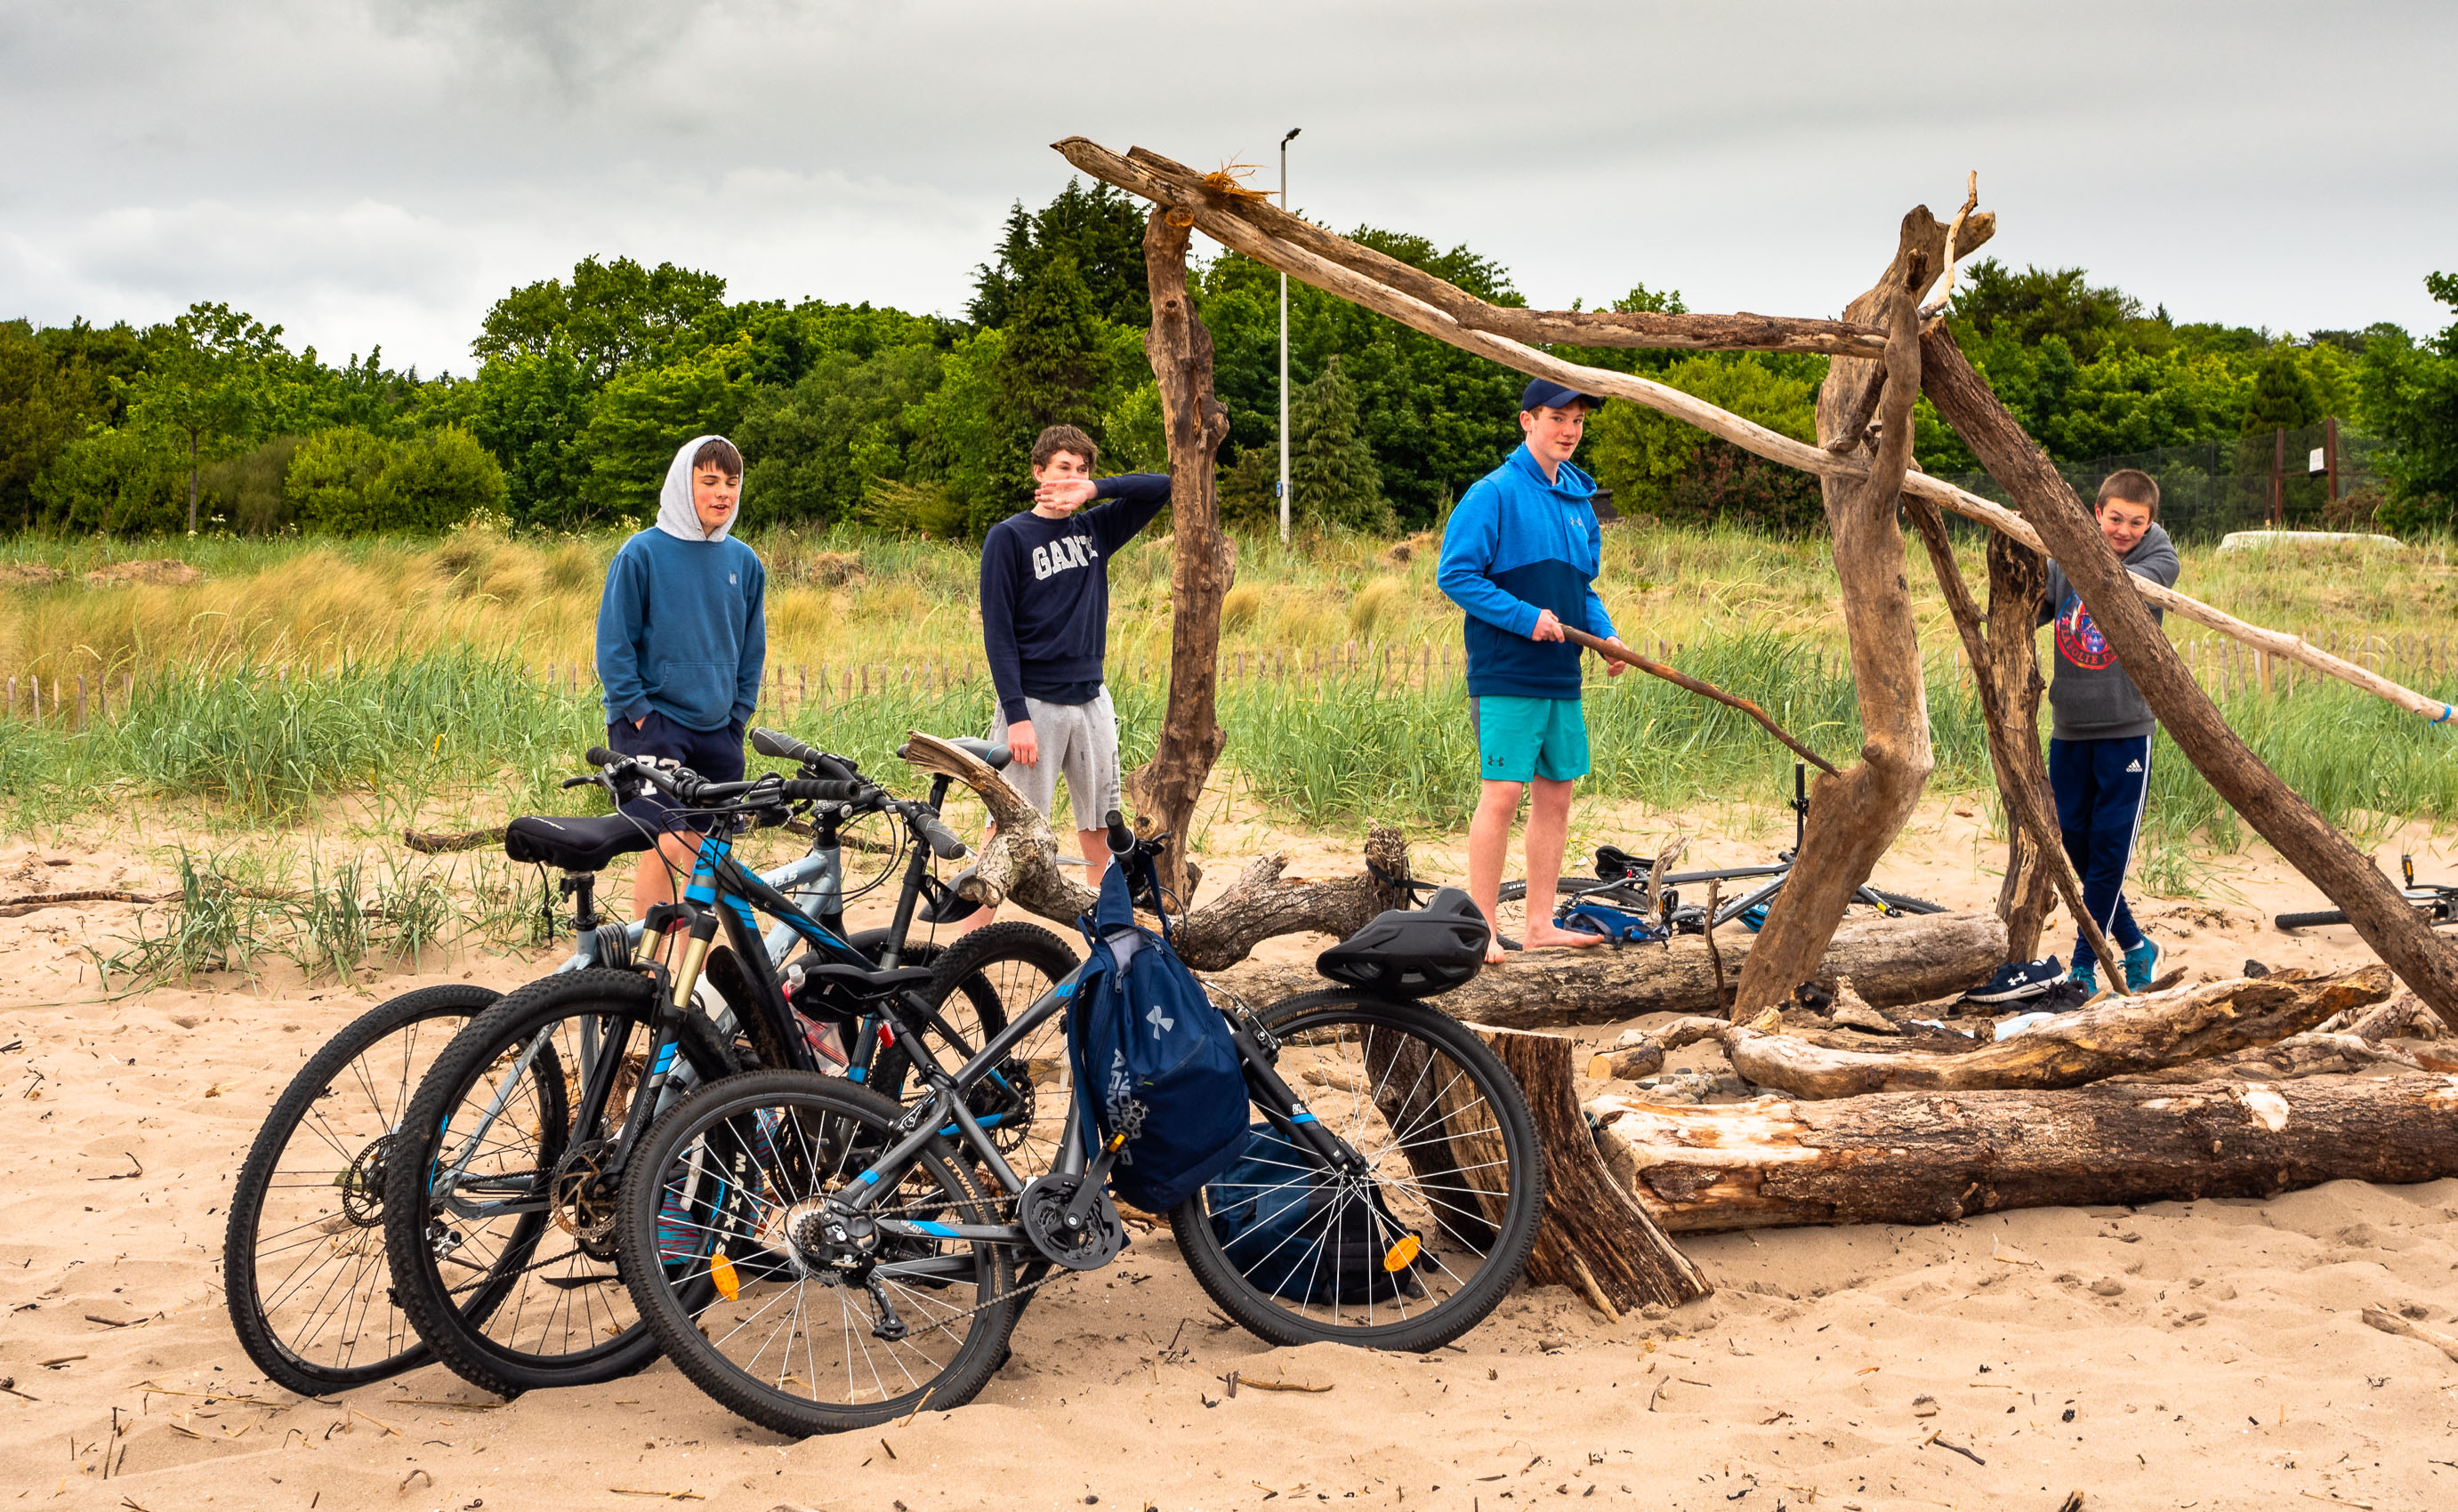 Group of young lads building on Broughty Ferry beach during the Coronavirus lockdown in June 2020, Dundee, Scotland. DD070